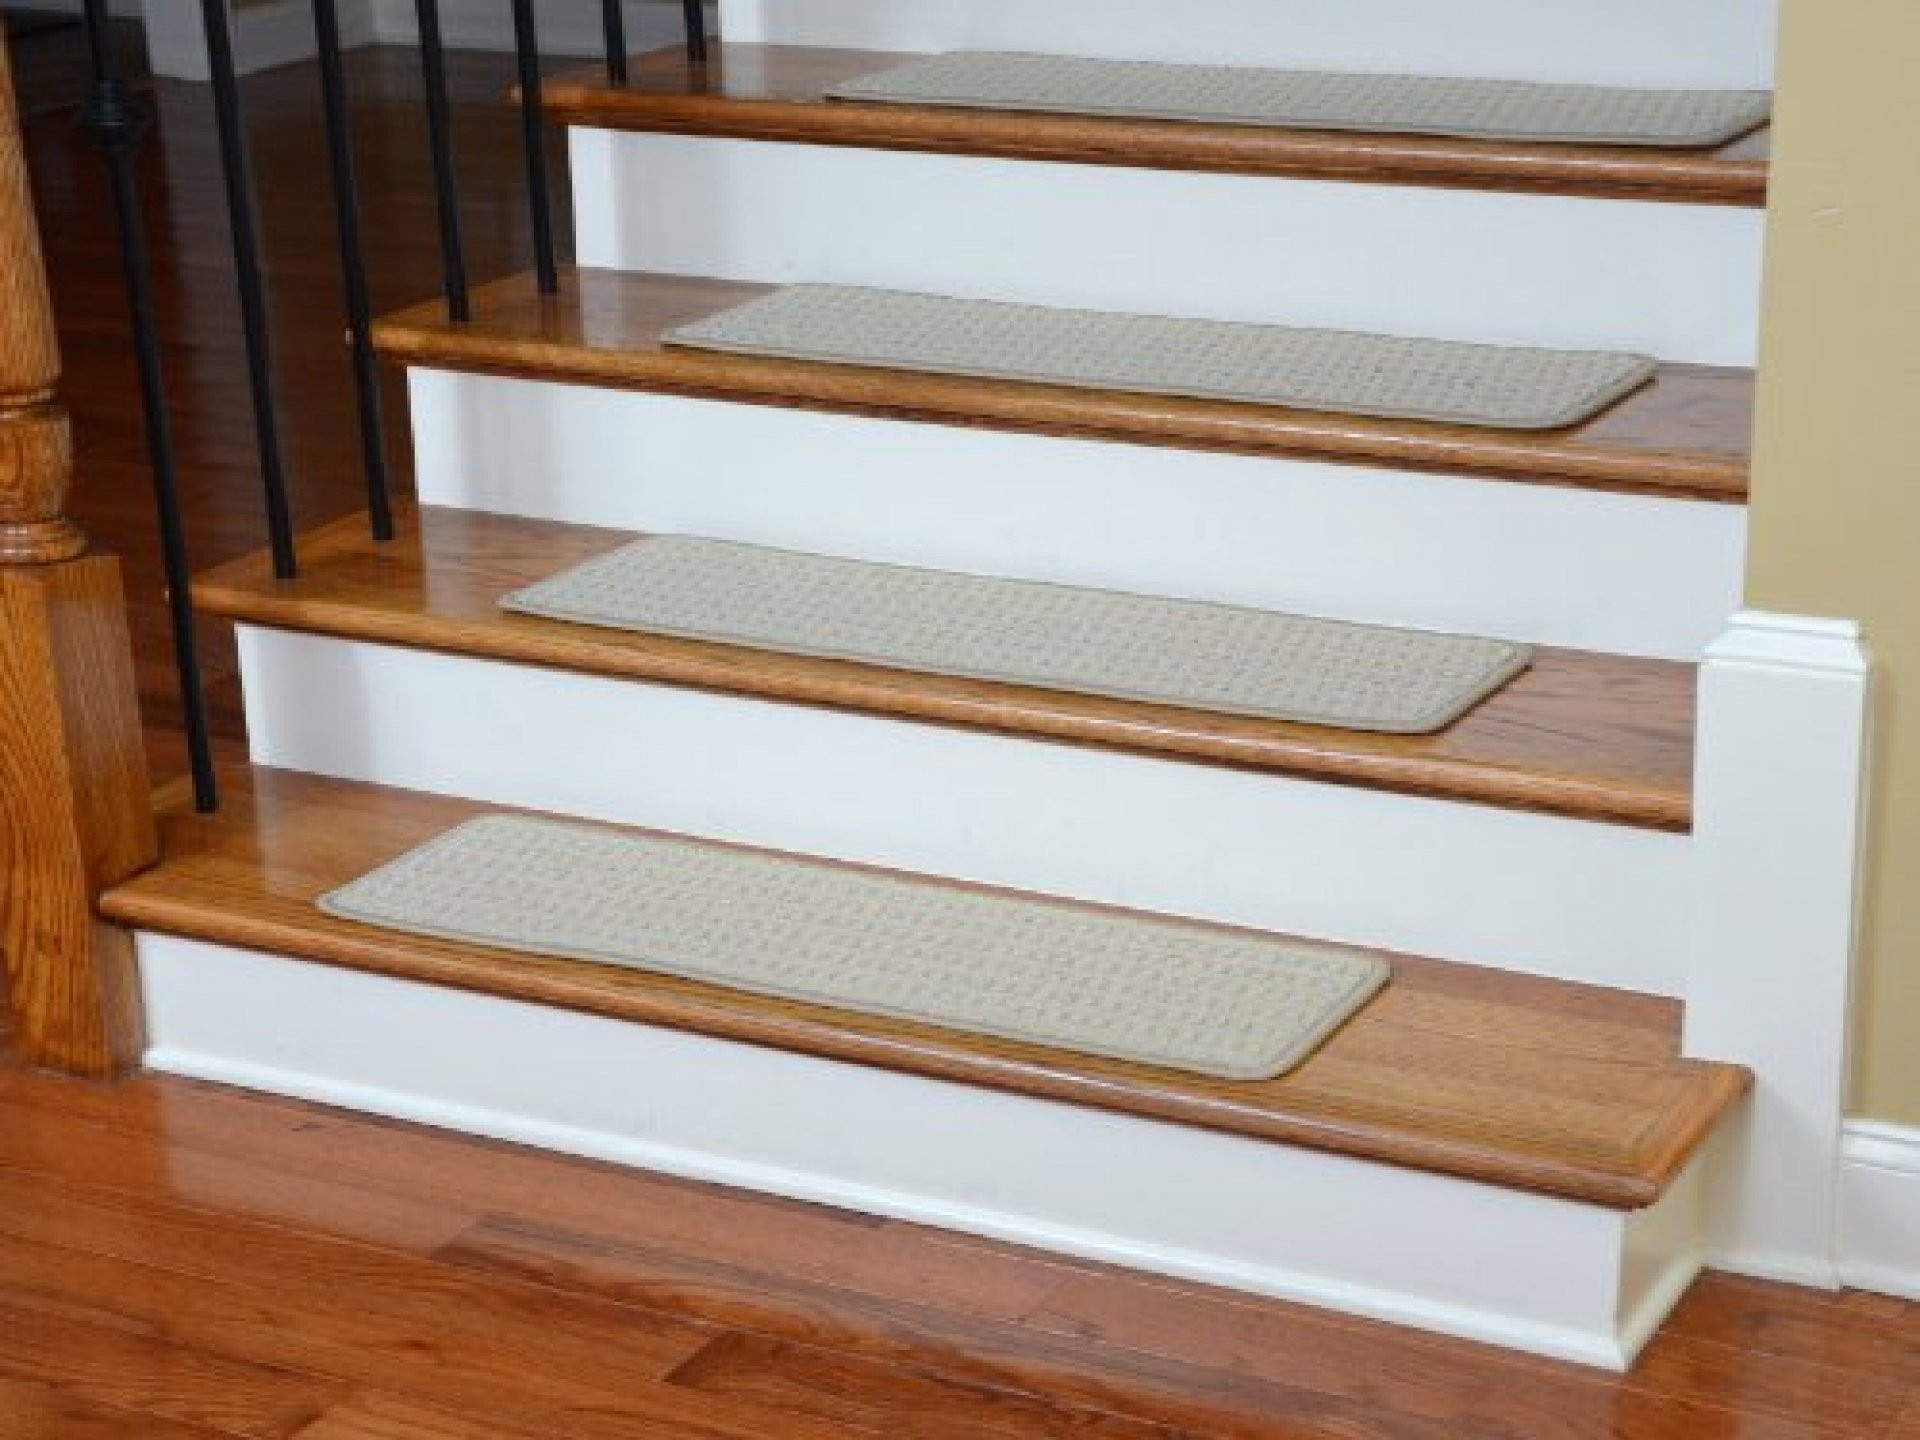 Best ideas about Non Slip Stair Treads . Save or Pin Non Skid Stair Treads Styles — The Wooden Houses Now.